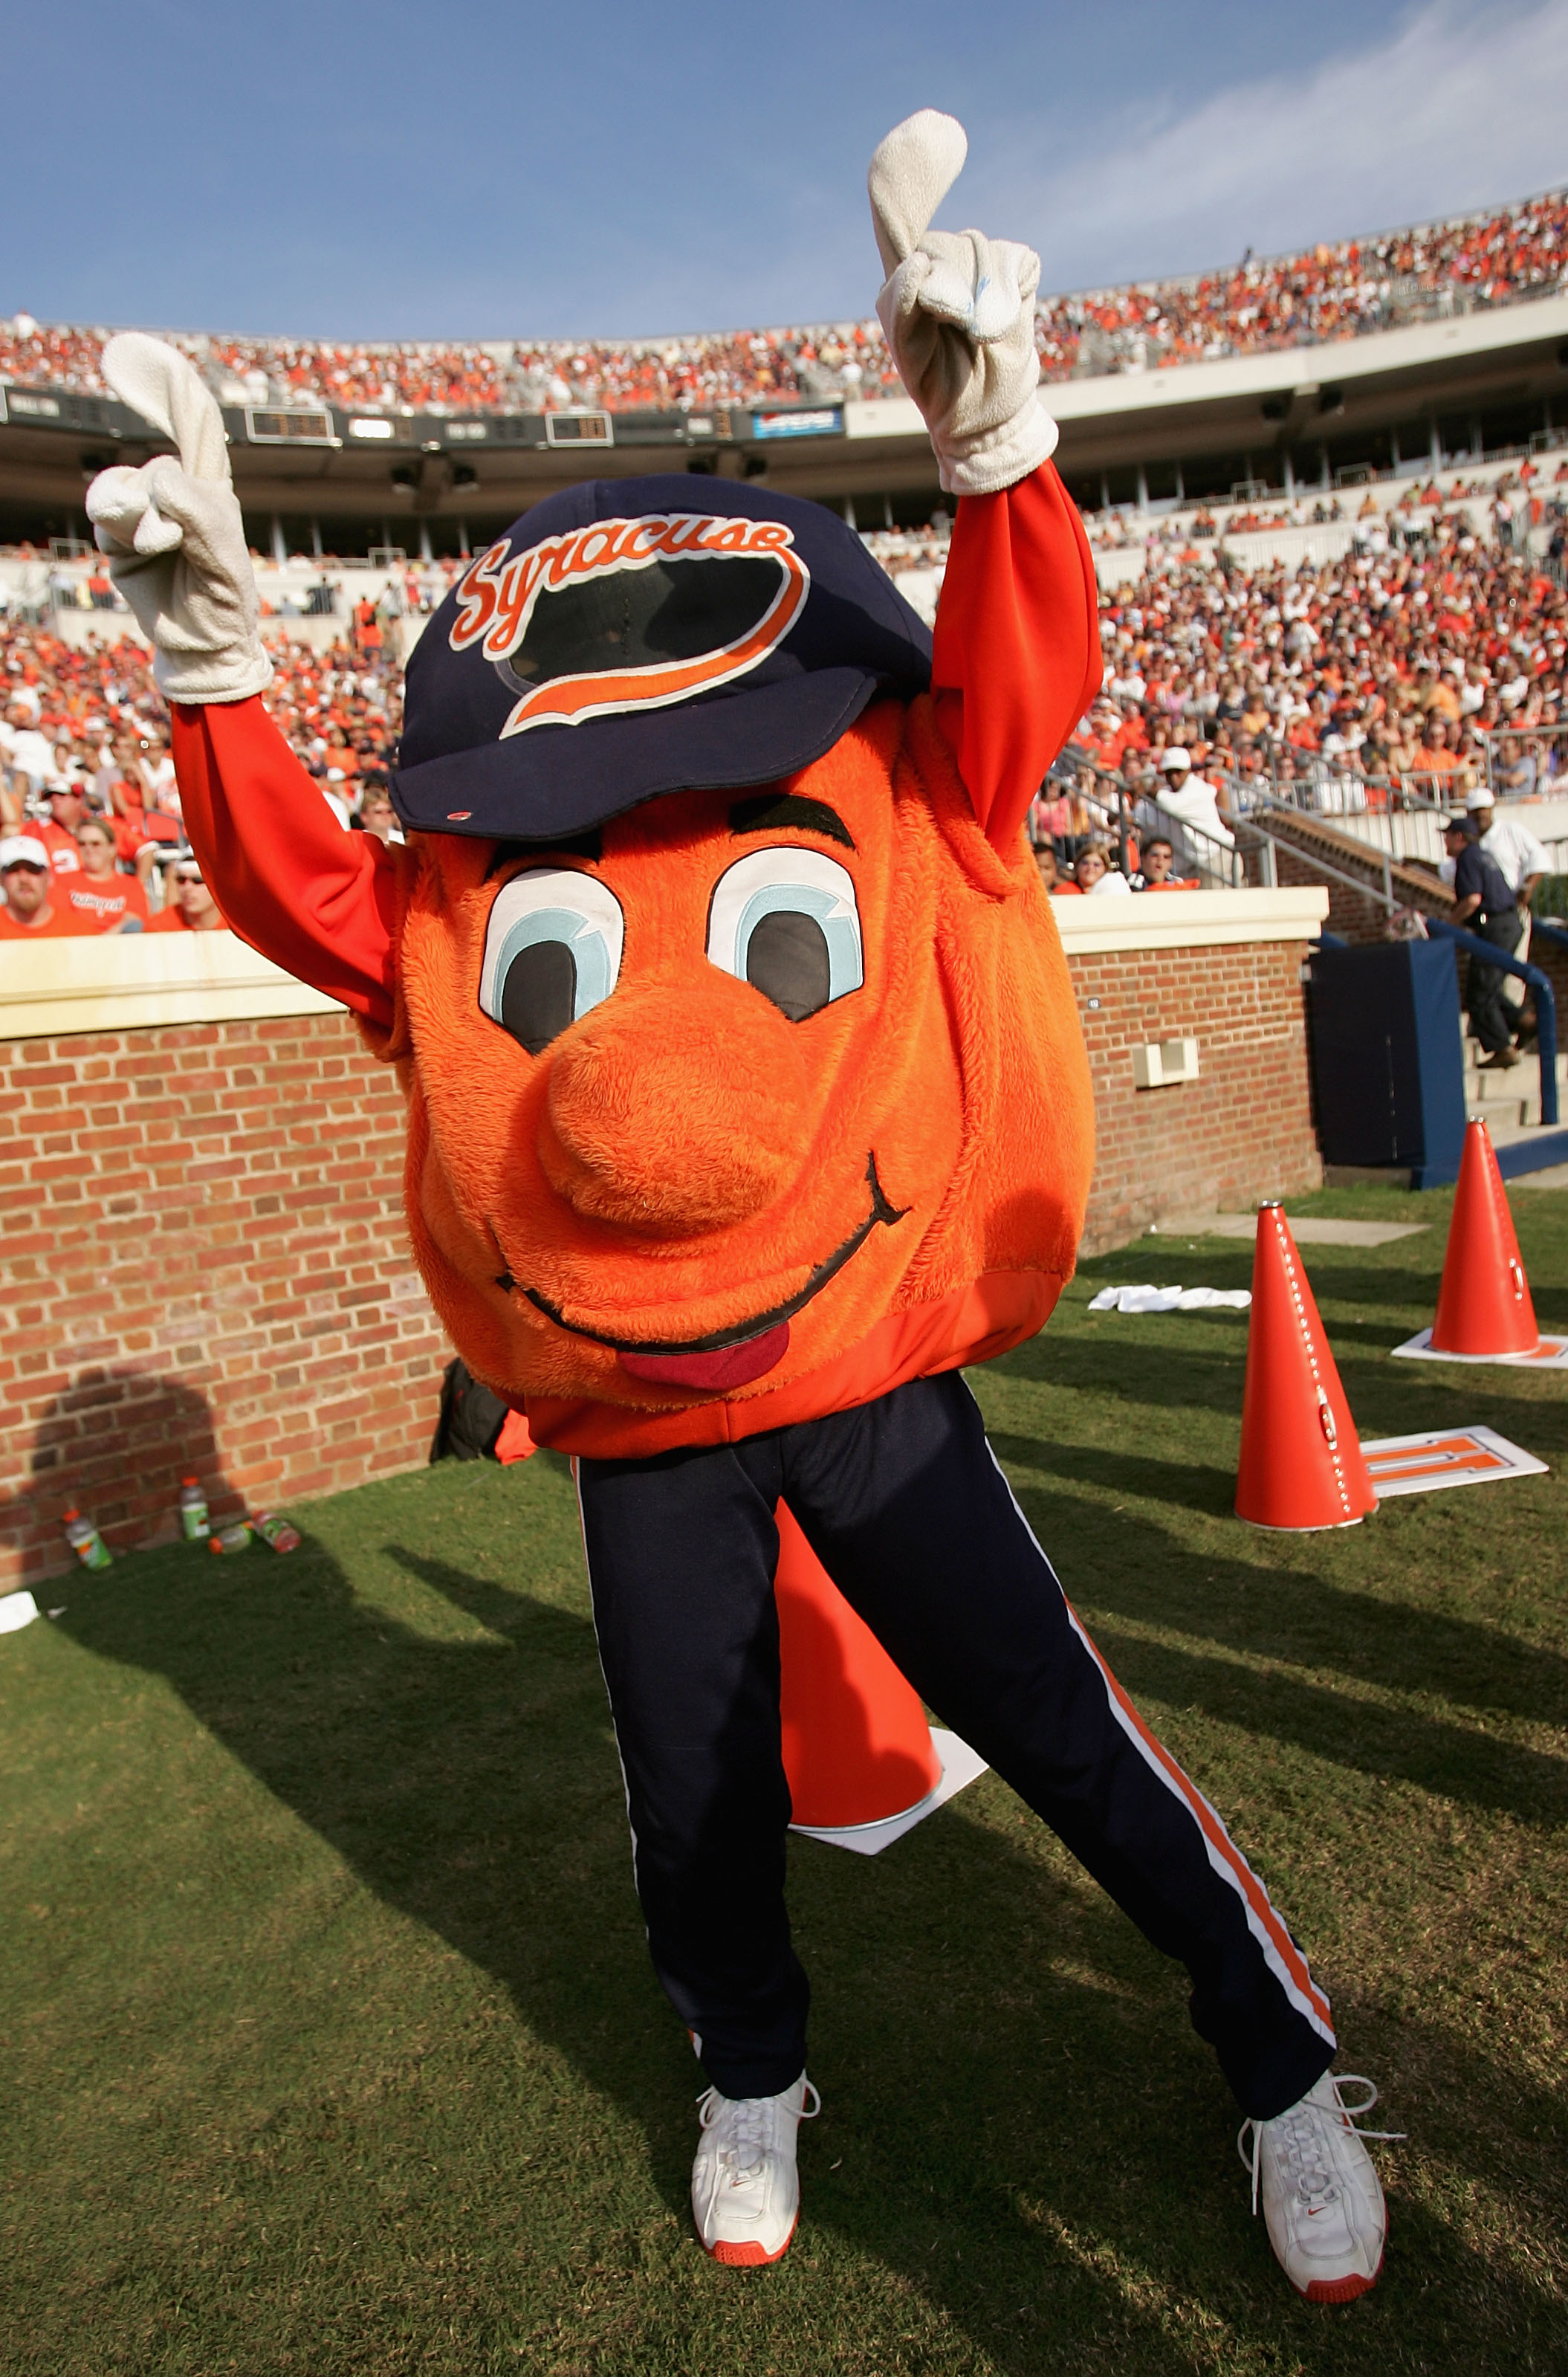 CHARLOTTESVILLE, VA - SEPTEMBER 25:  The Syracue Orangeman mascot supports his team as they were defeated by the Virginia Cavaliers 31-10 at Scott Stadium on September 25, 2004 in Charlottesville, Virginia. (Photo by Doug Pensinger/Getty Images)